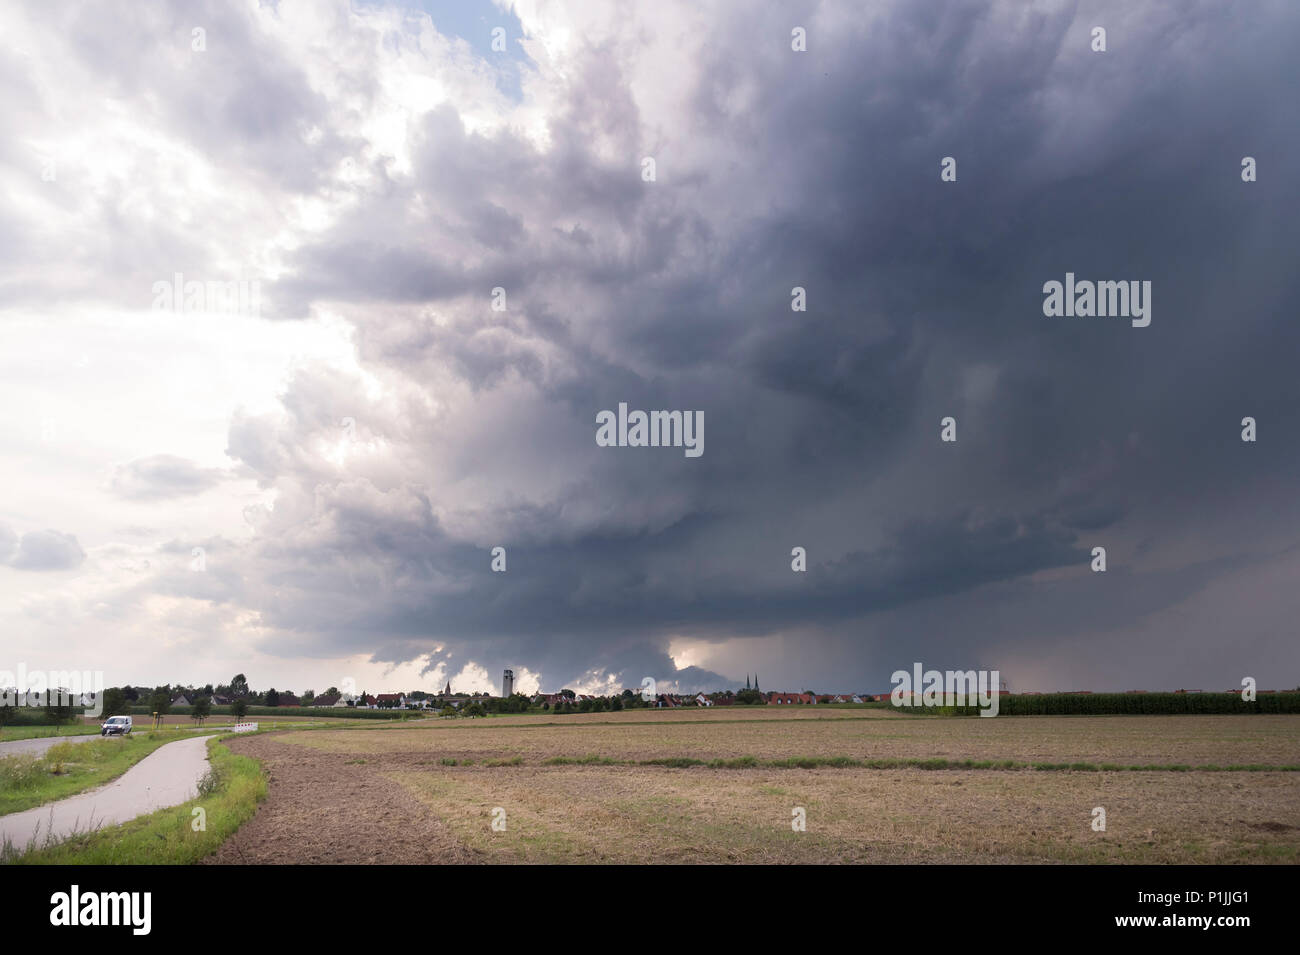 Storm split of two supercells, two wall clouds visible in the fore- and background, near Heilsbronn, Bavaria, Germany - Stock Image